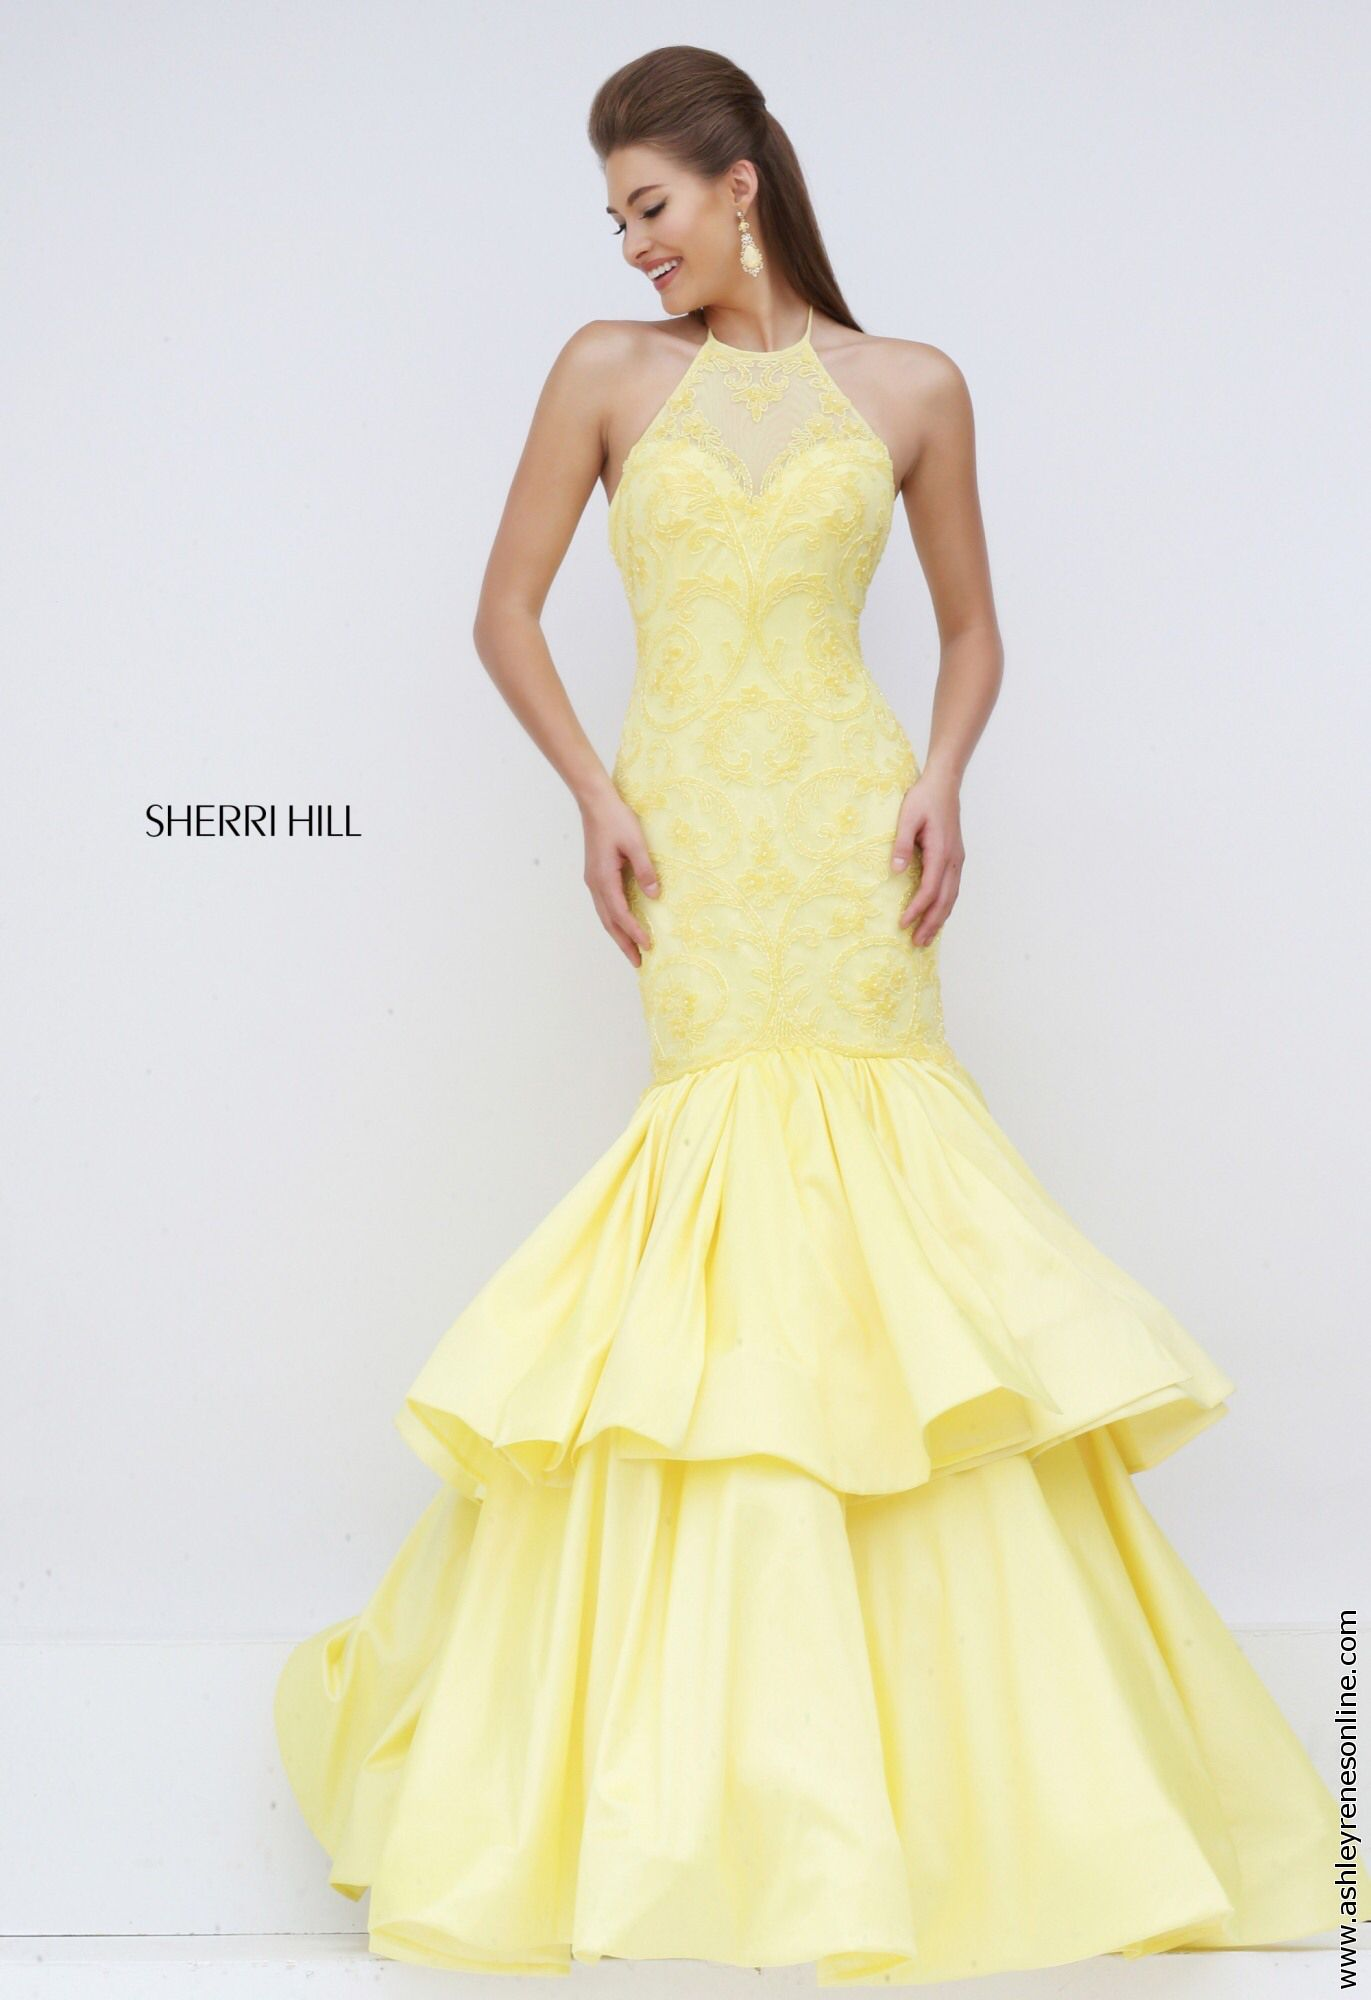 e66bc67820 Sherri Hill yellow prom dress at Ashley Rene s Elkhart